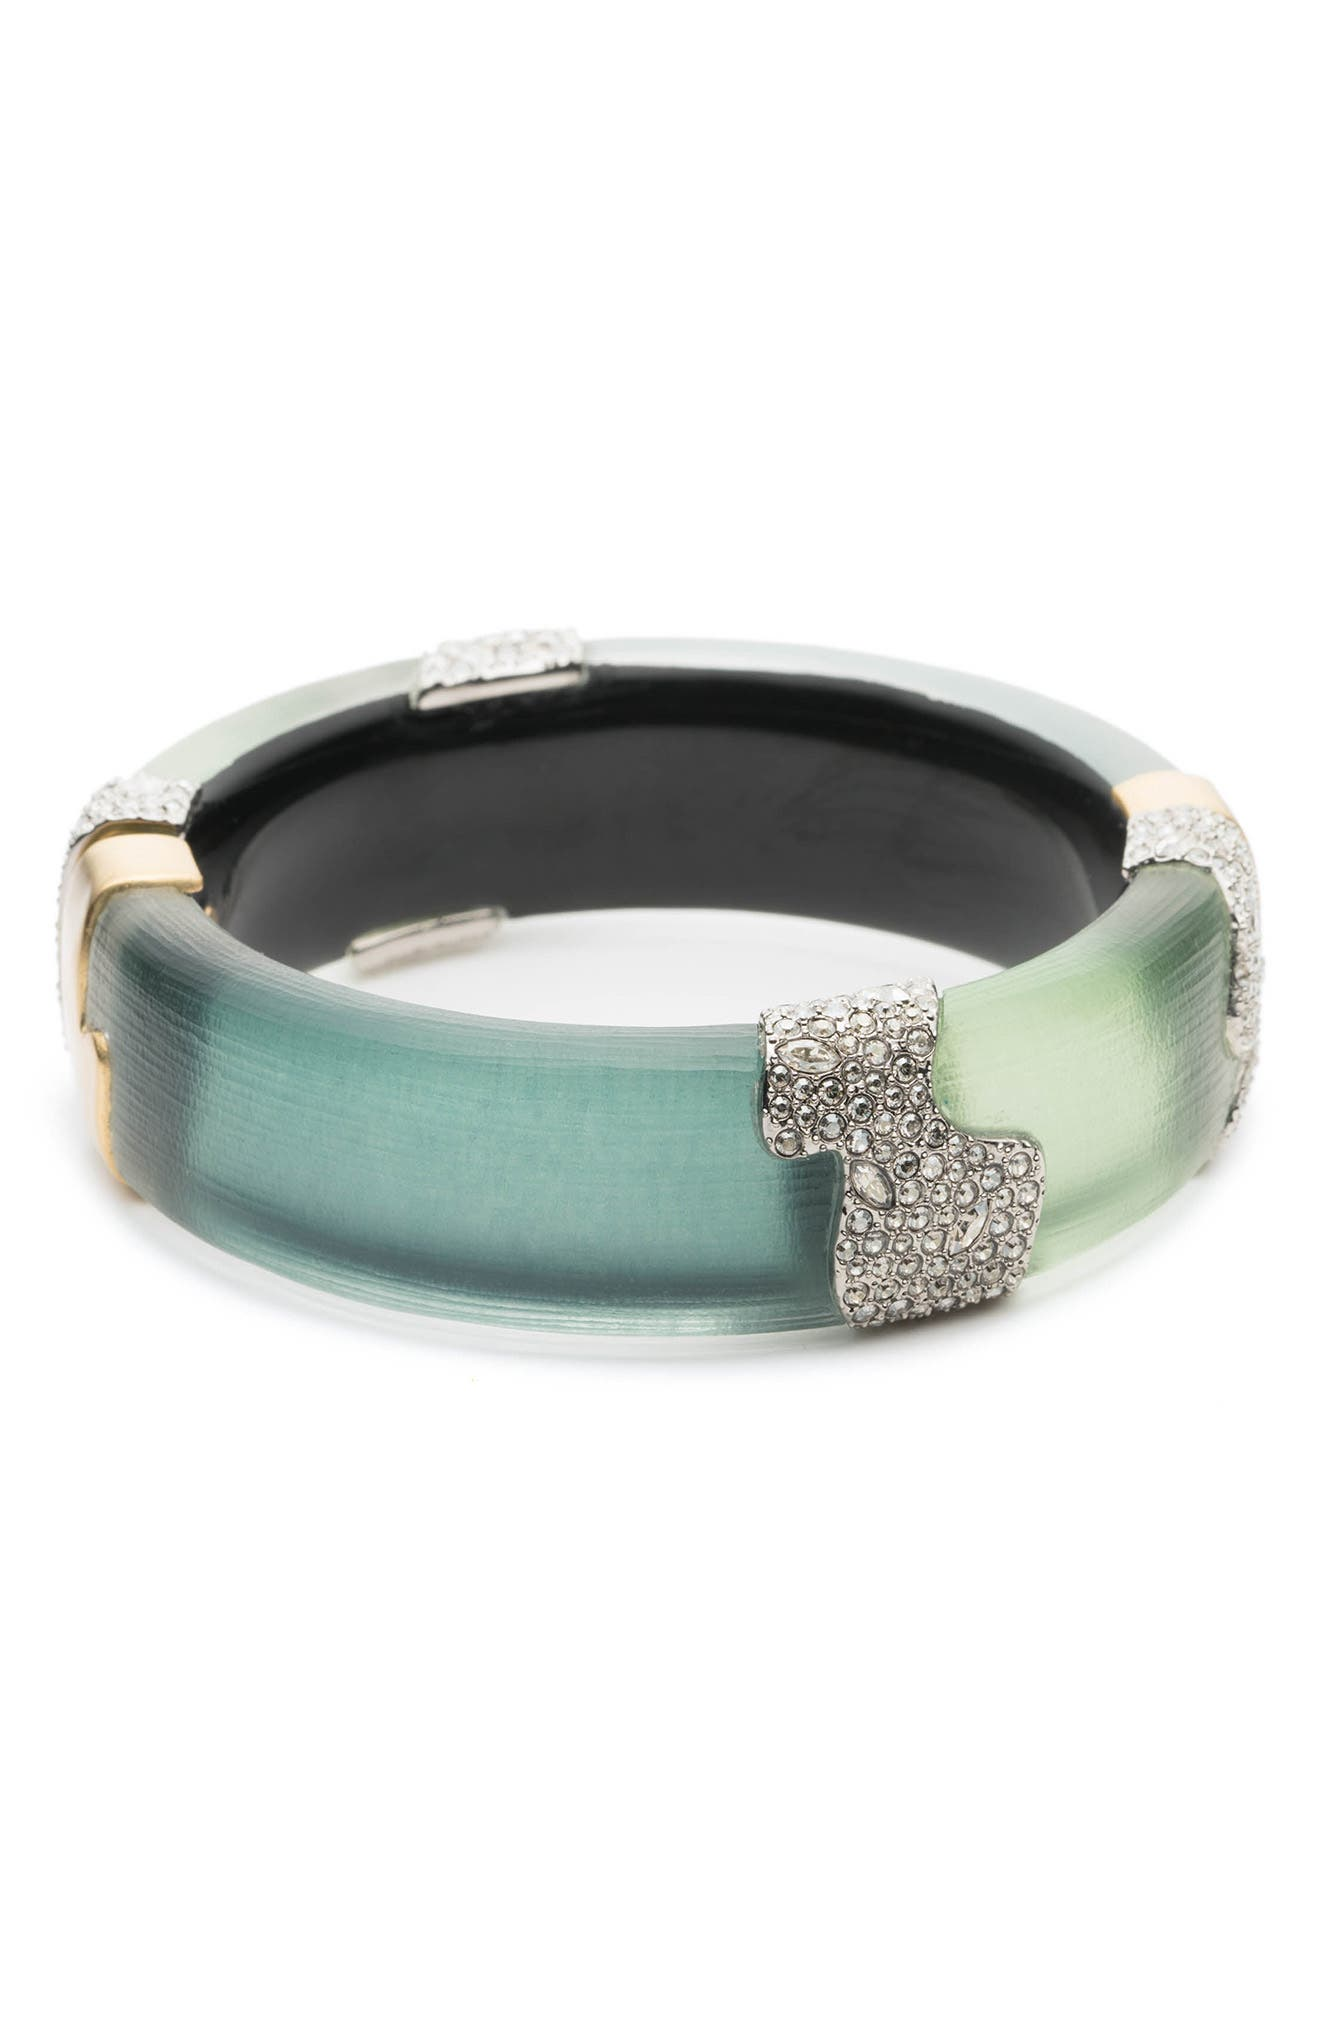 Crystal Encrusted Colorblocked Bracelet,                             Main thumbnail 1, color,                             440